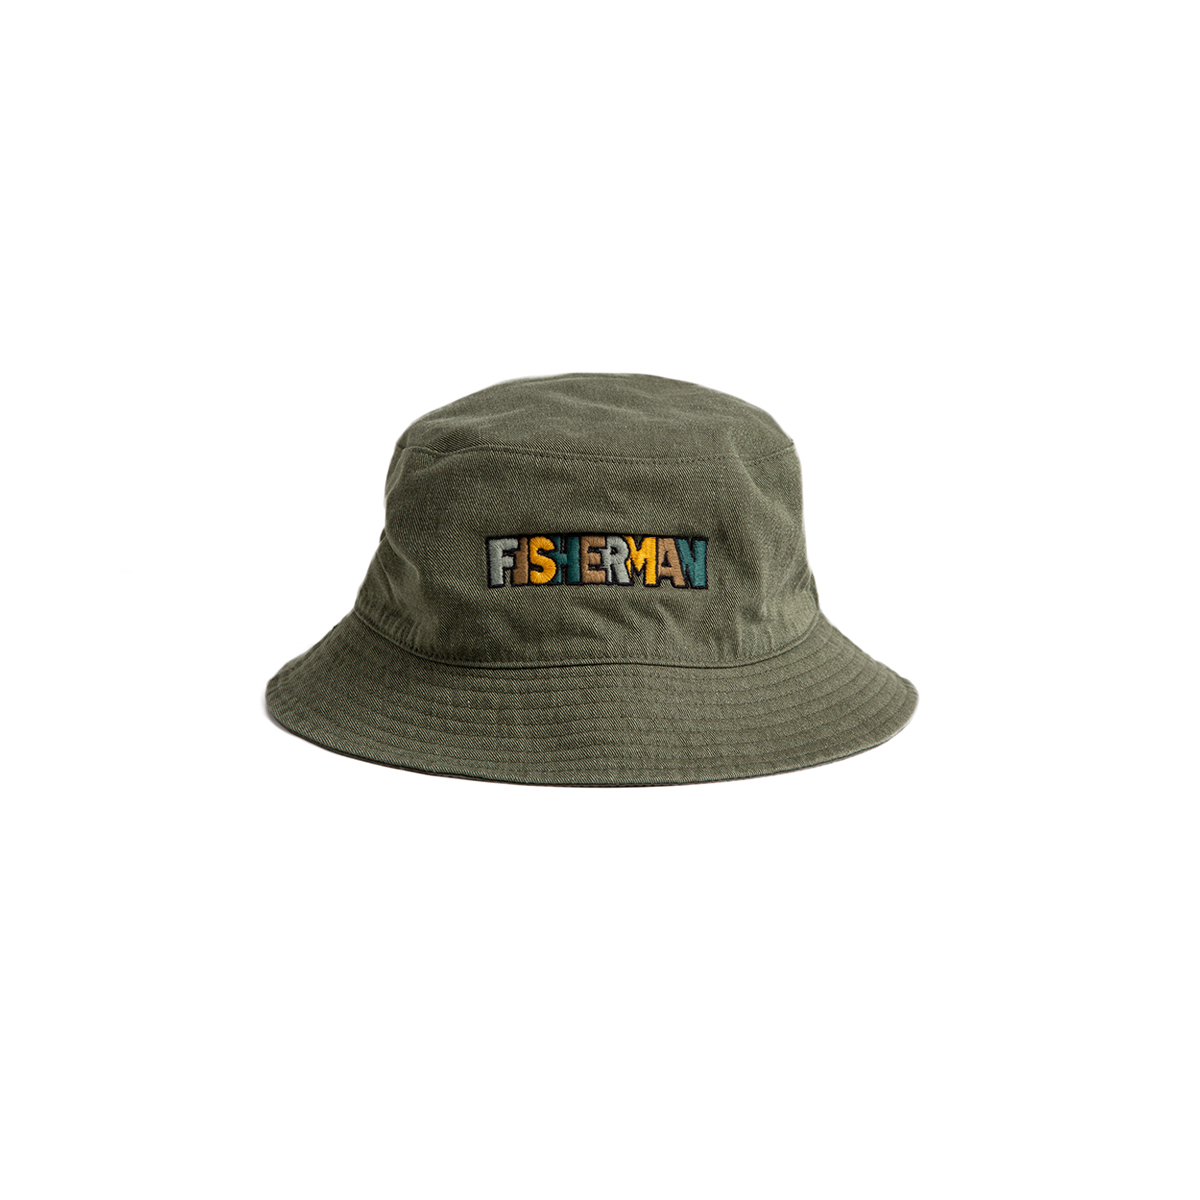 "Reversible Neelde Bucket_FISHERMAN ""KHAKI""자수가 촘촘히 들어간 버킷[50% off]"